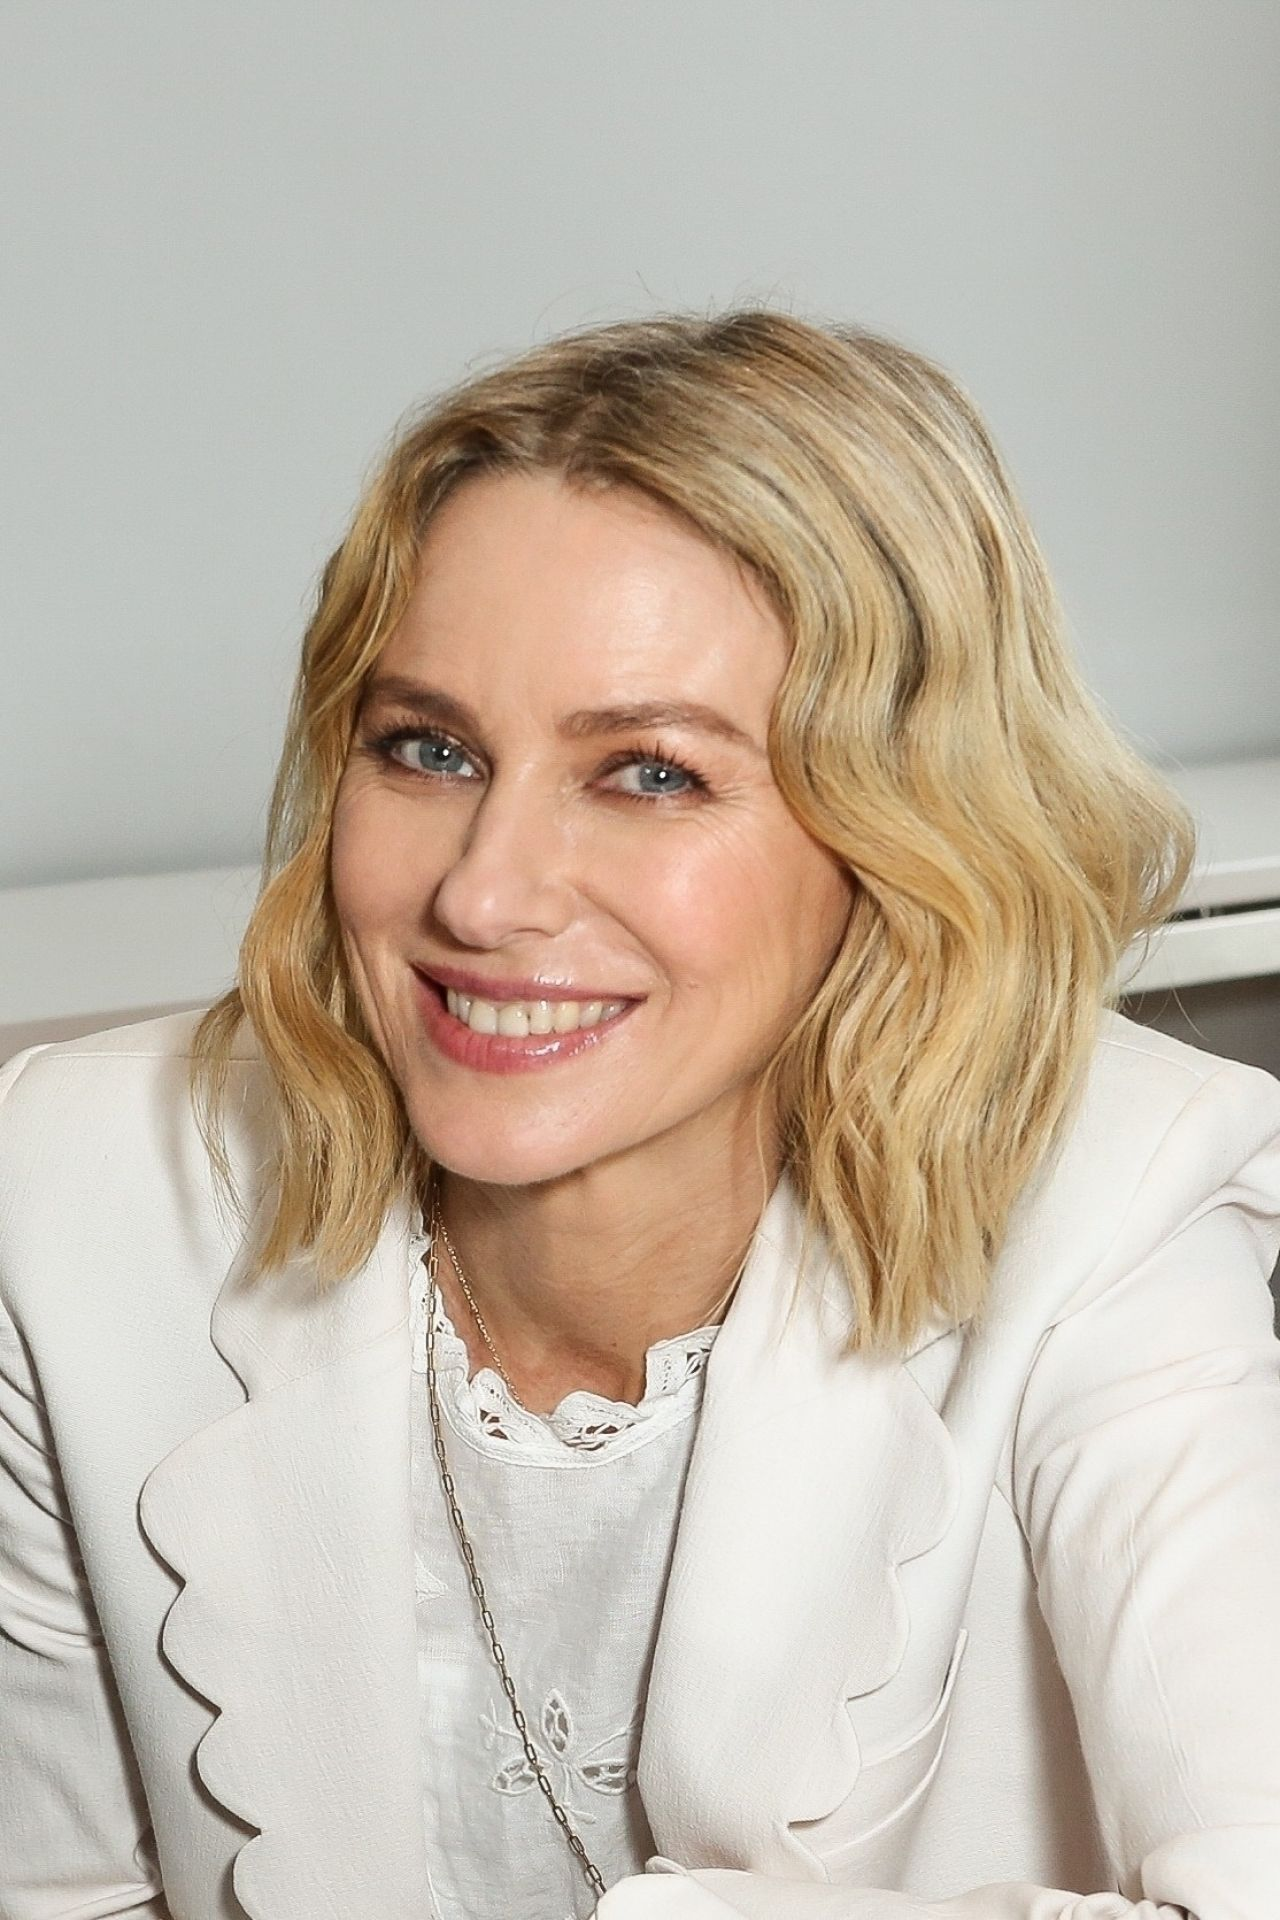 https://celebmafia.com/wp-content/uploads/2018/11/naomi-watts-ronald-mcdonald-house-foundation-in-sydney-11-17-2018-0.jpg